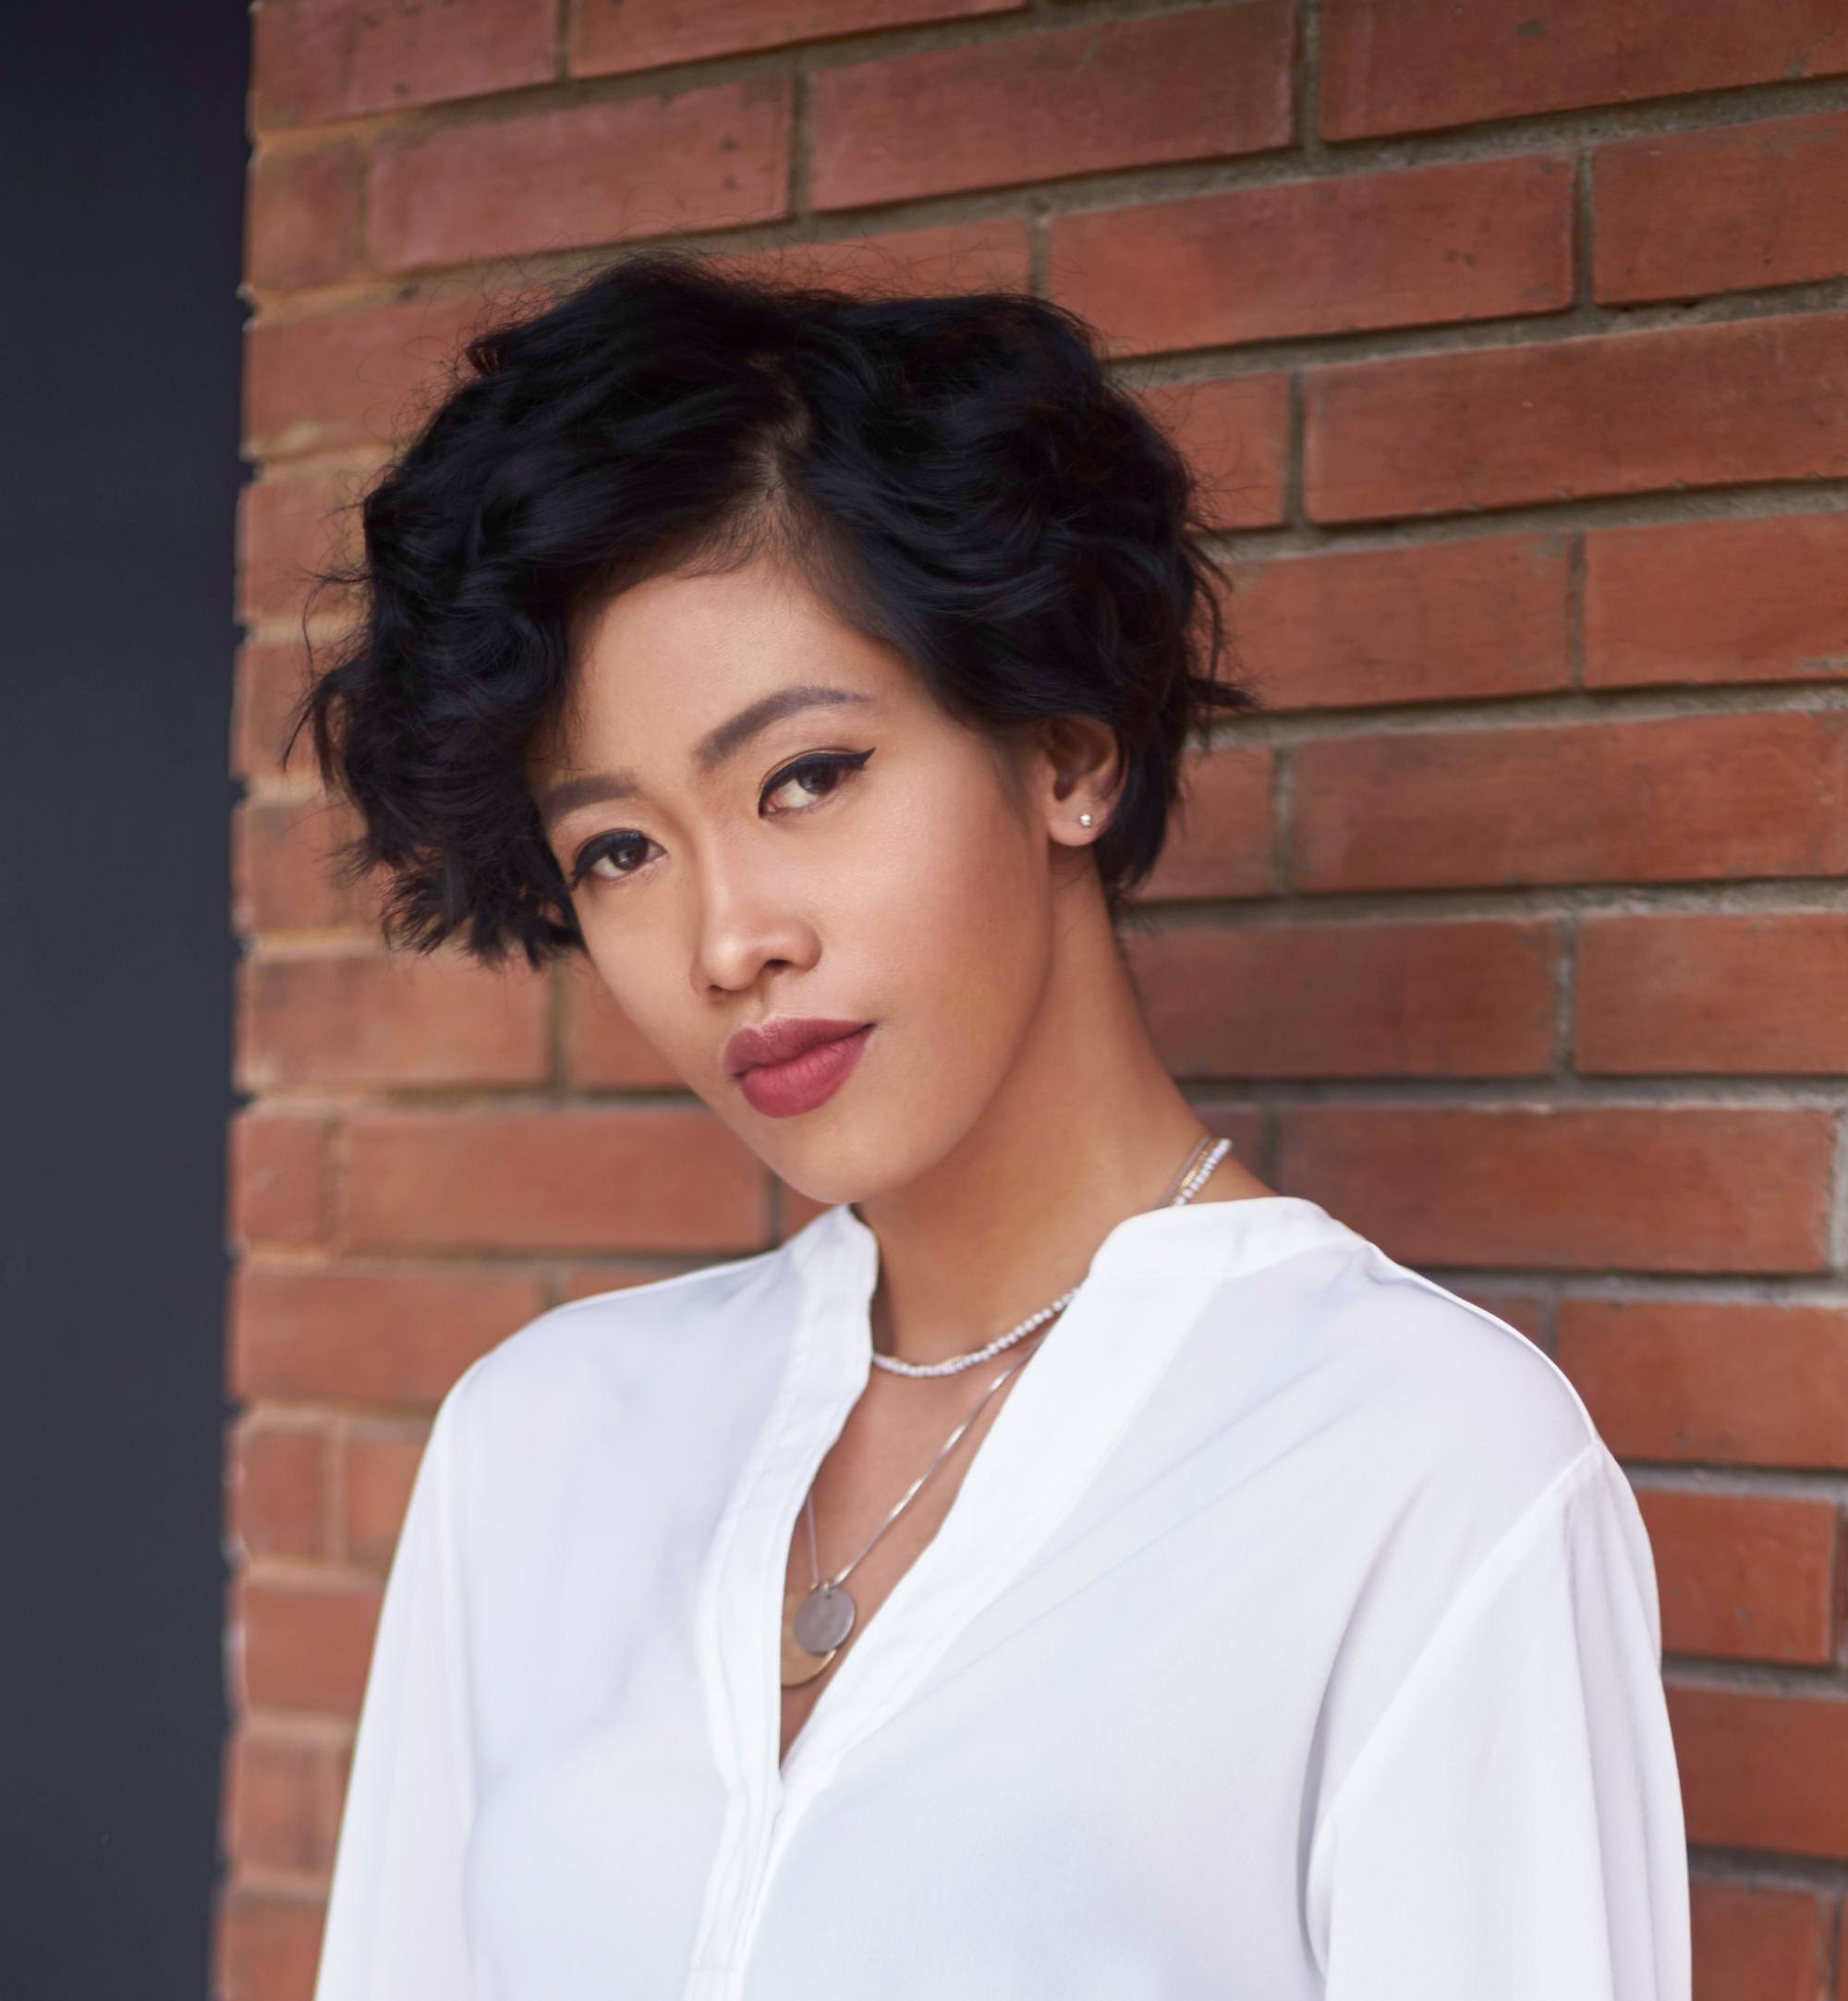 Short hairstyles for Filipinas: Closeup shot of an Asian woman with curly short hair black hair wearing a white top